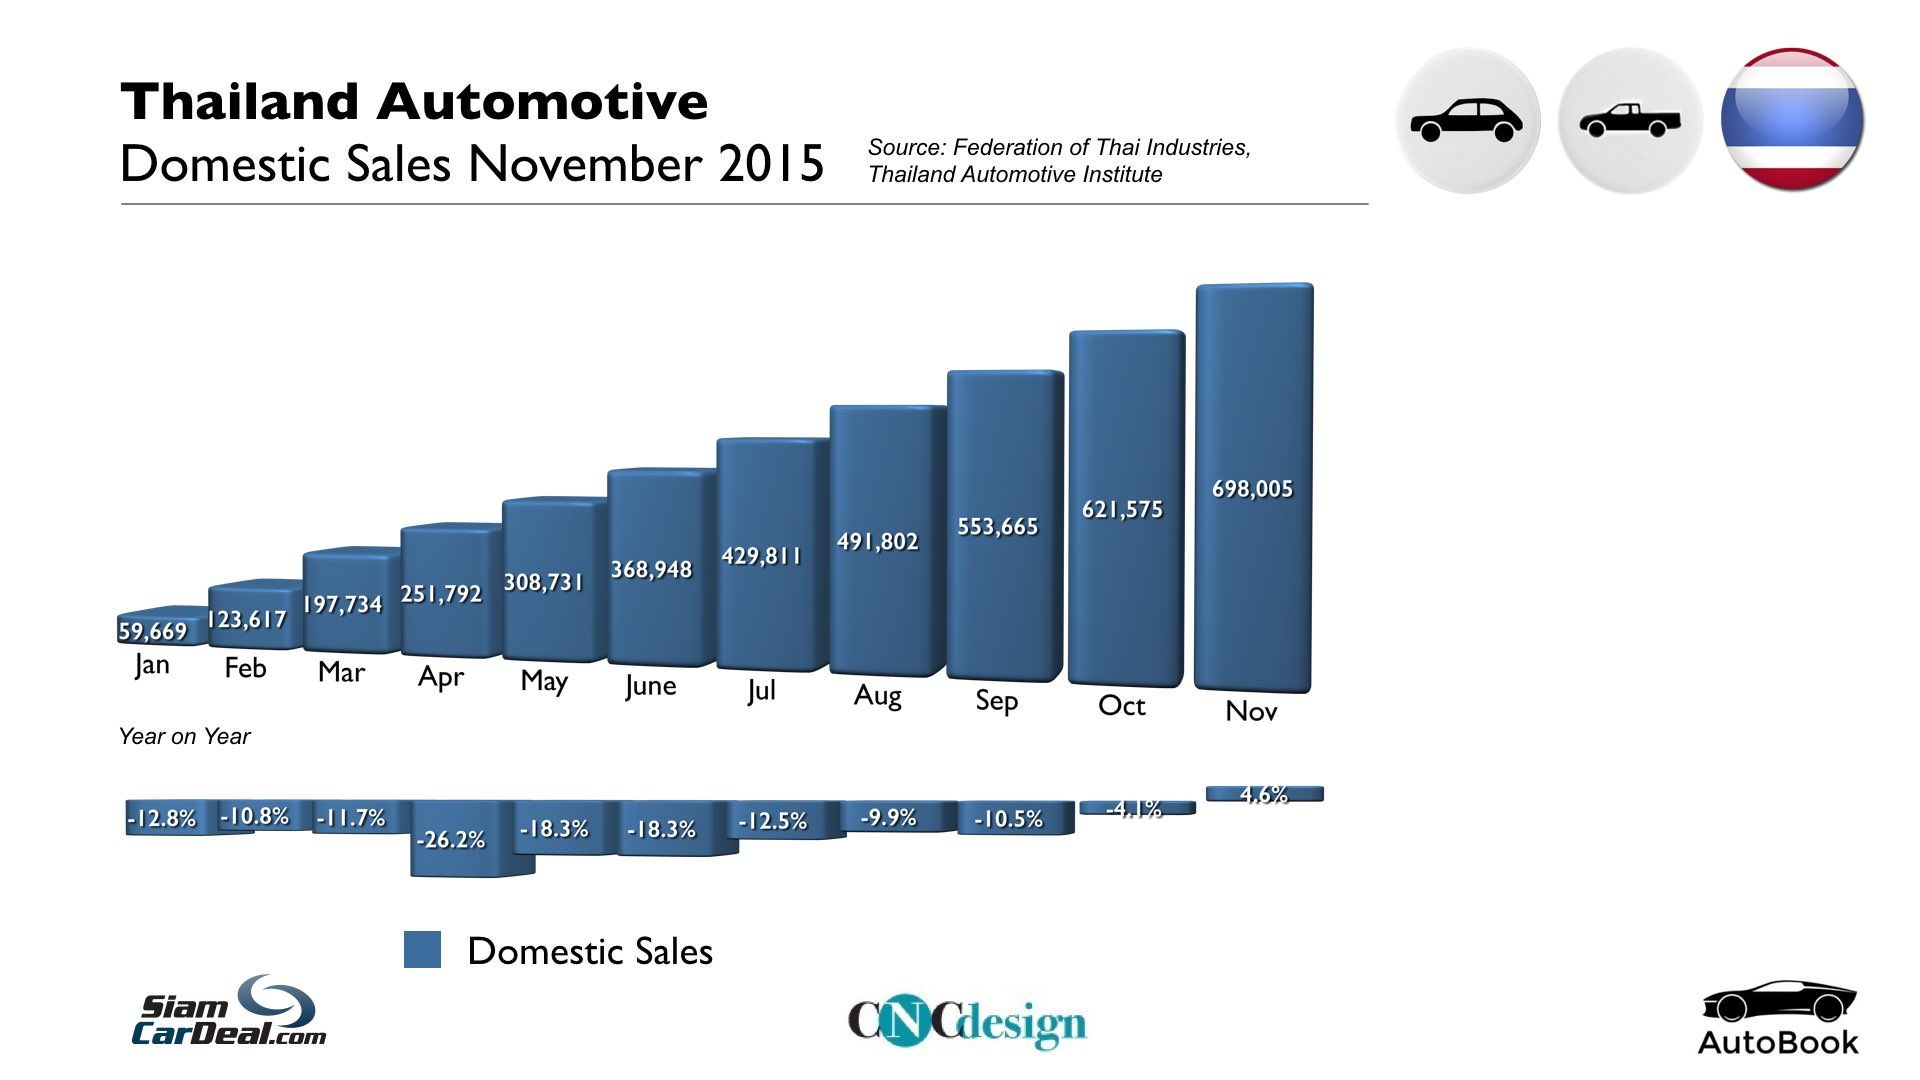 Pin by AutoBook on Thailand Automotive Statistics November 2015